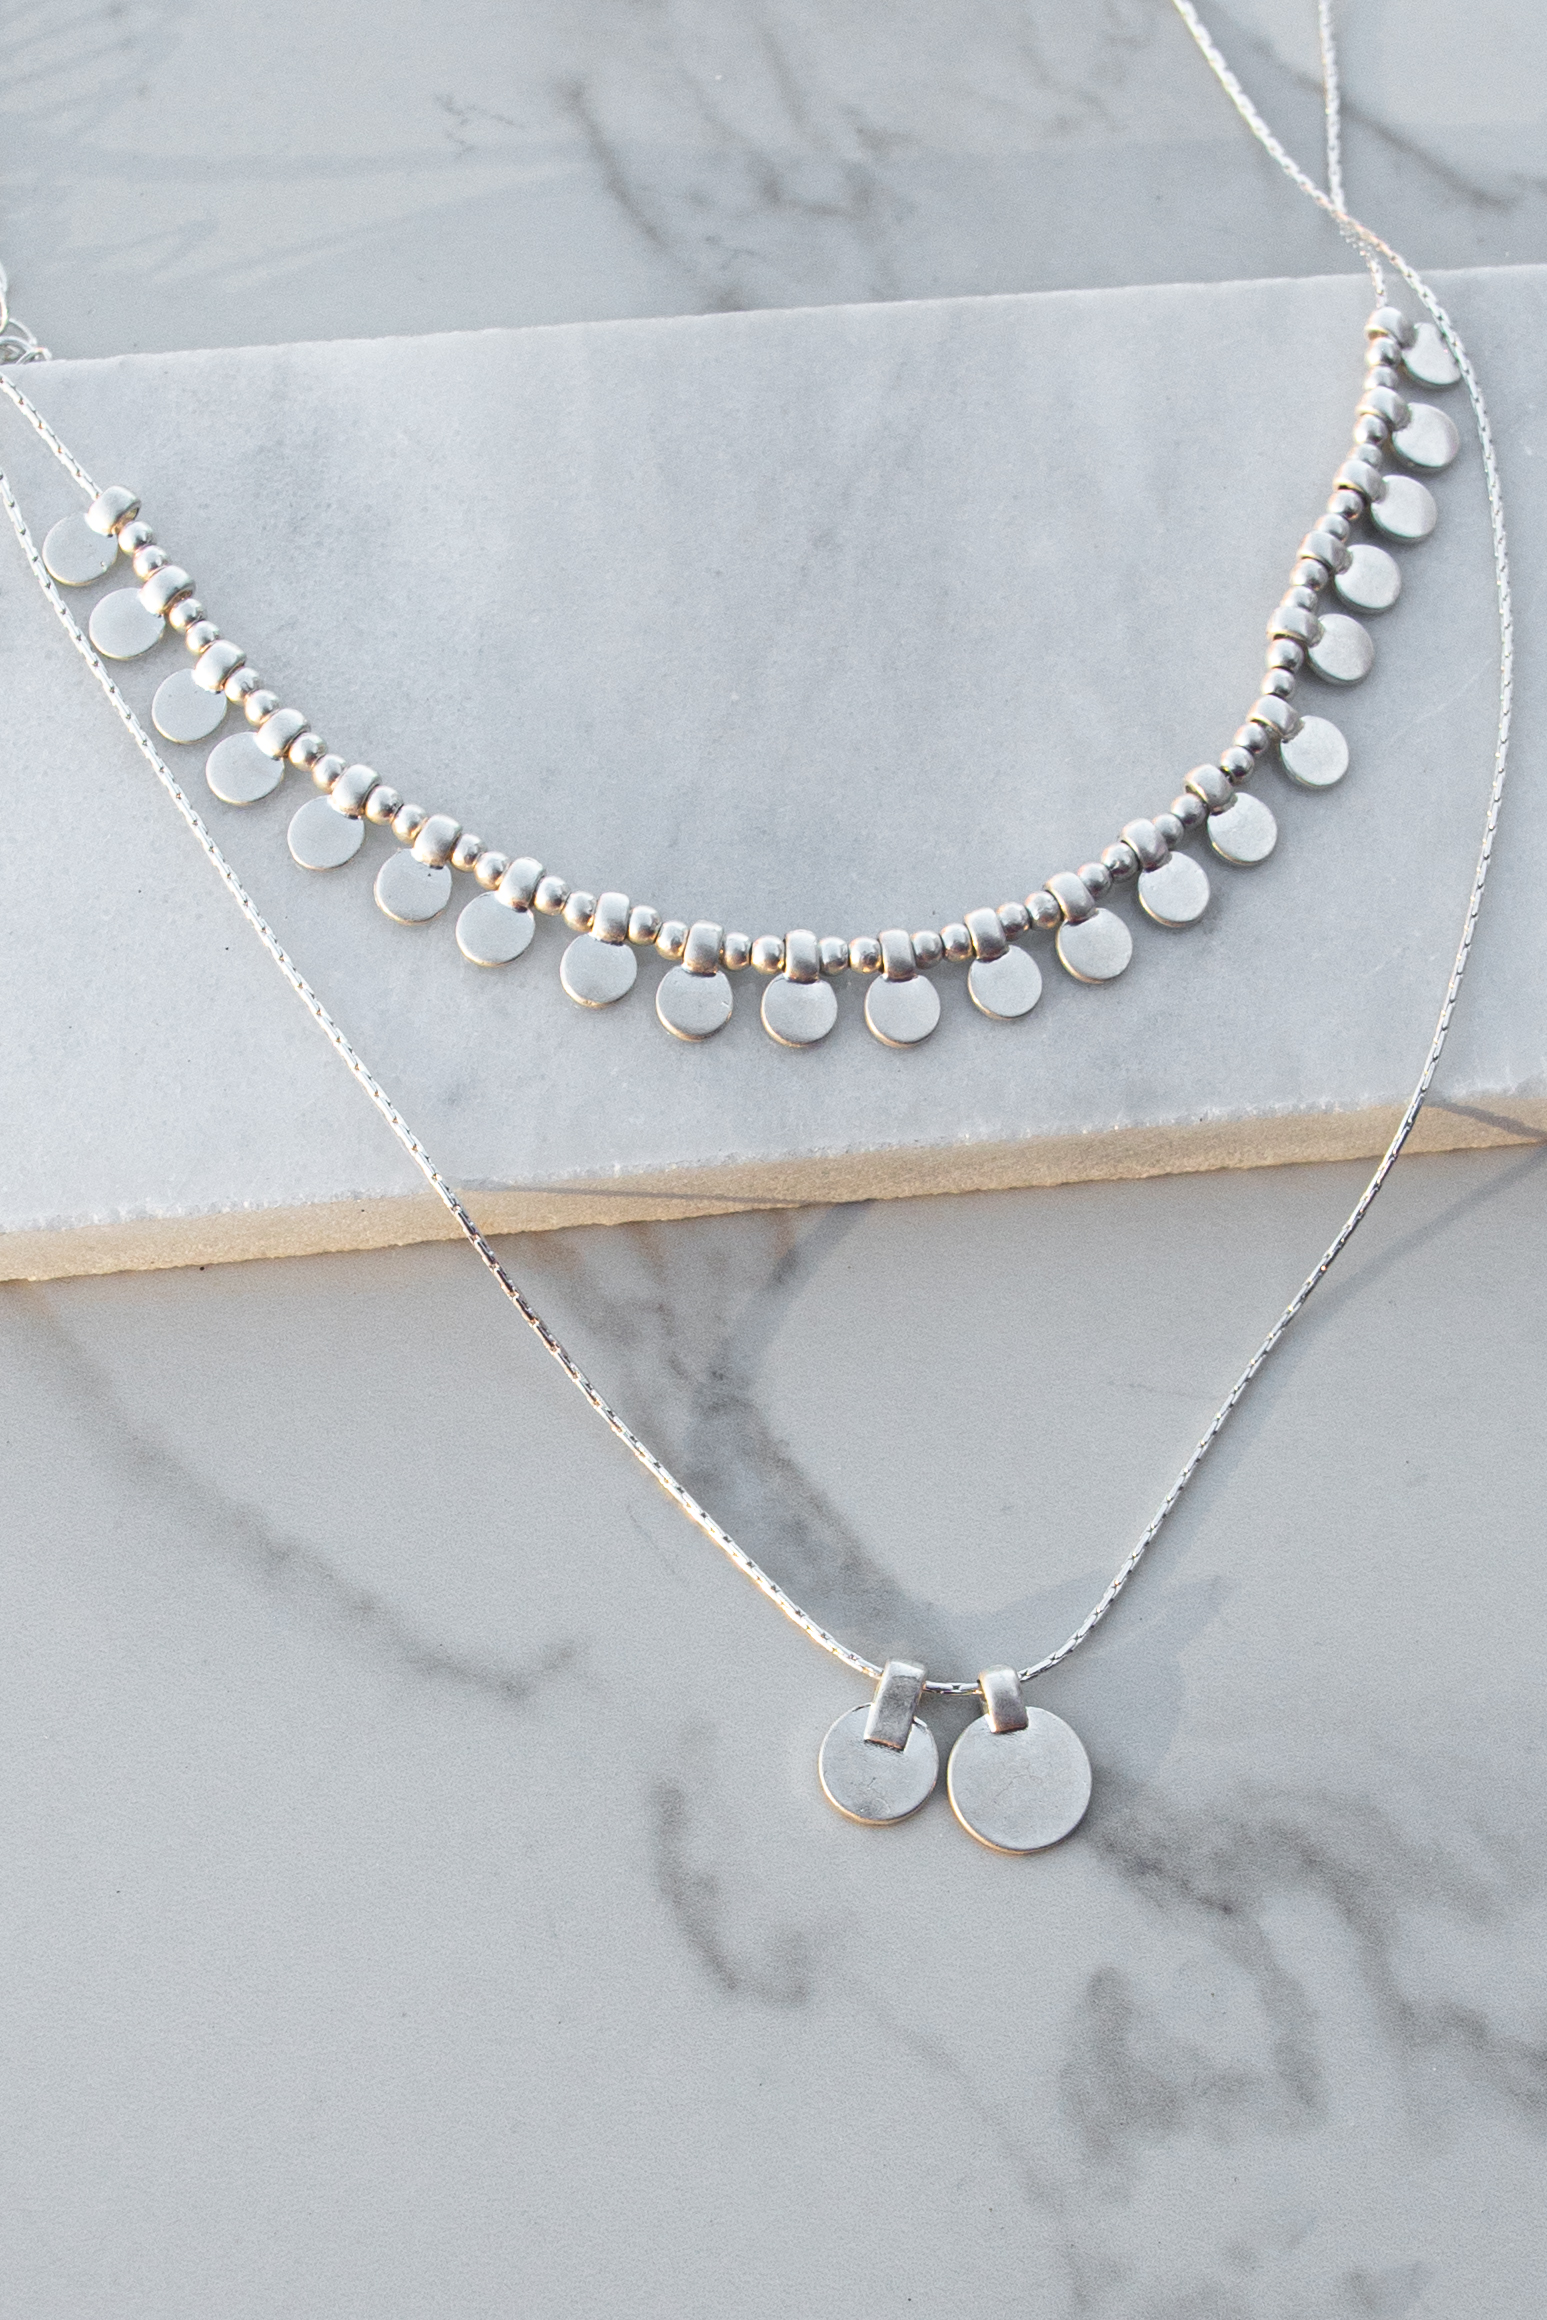 Brushed Silver Necklace Set with Coin Pendants